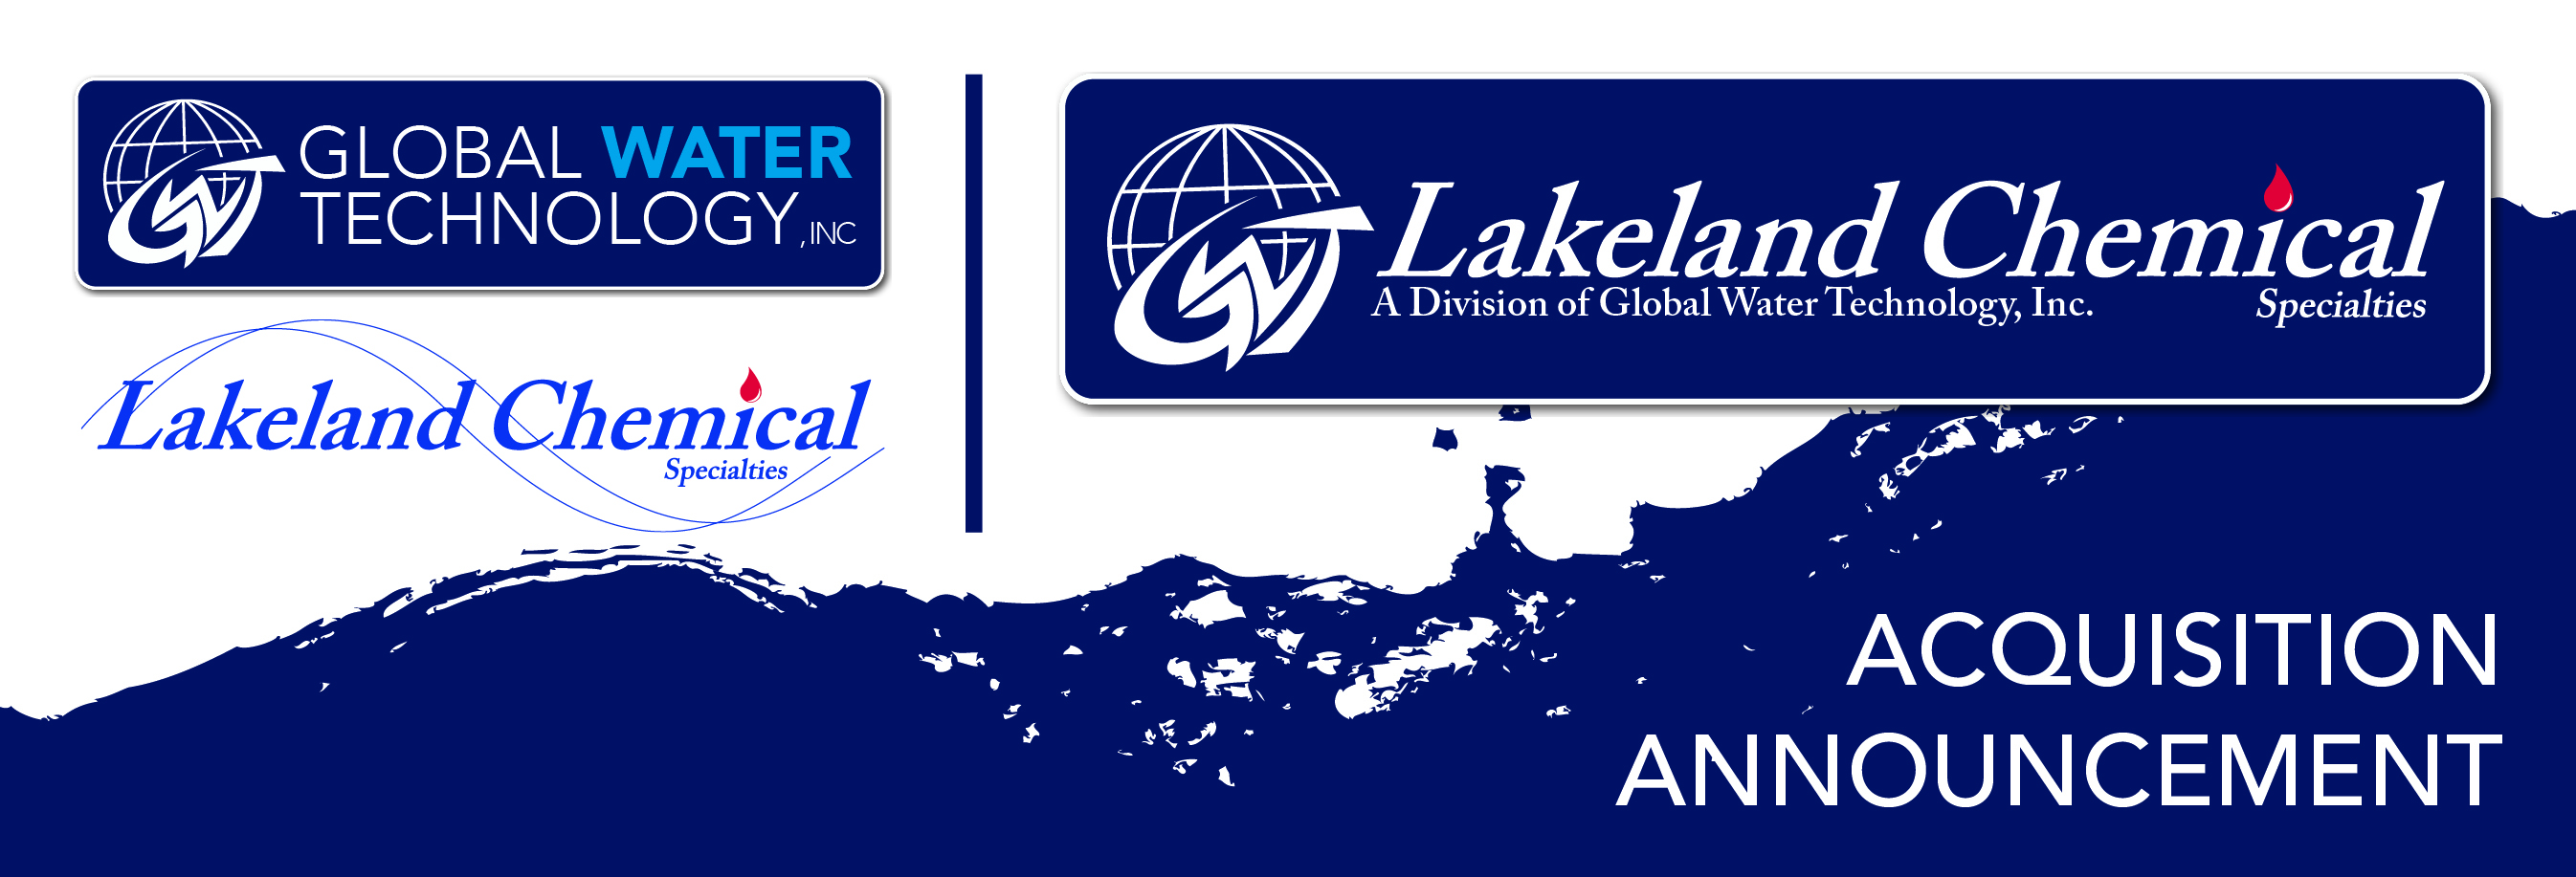 GWT Announces Acquisition of Lakeland Chemical Specialties